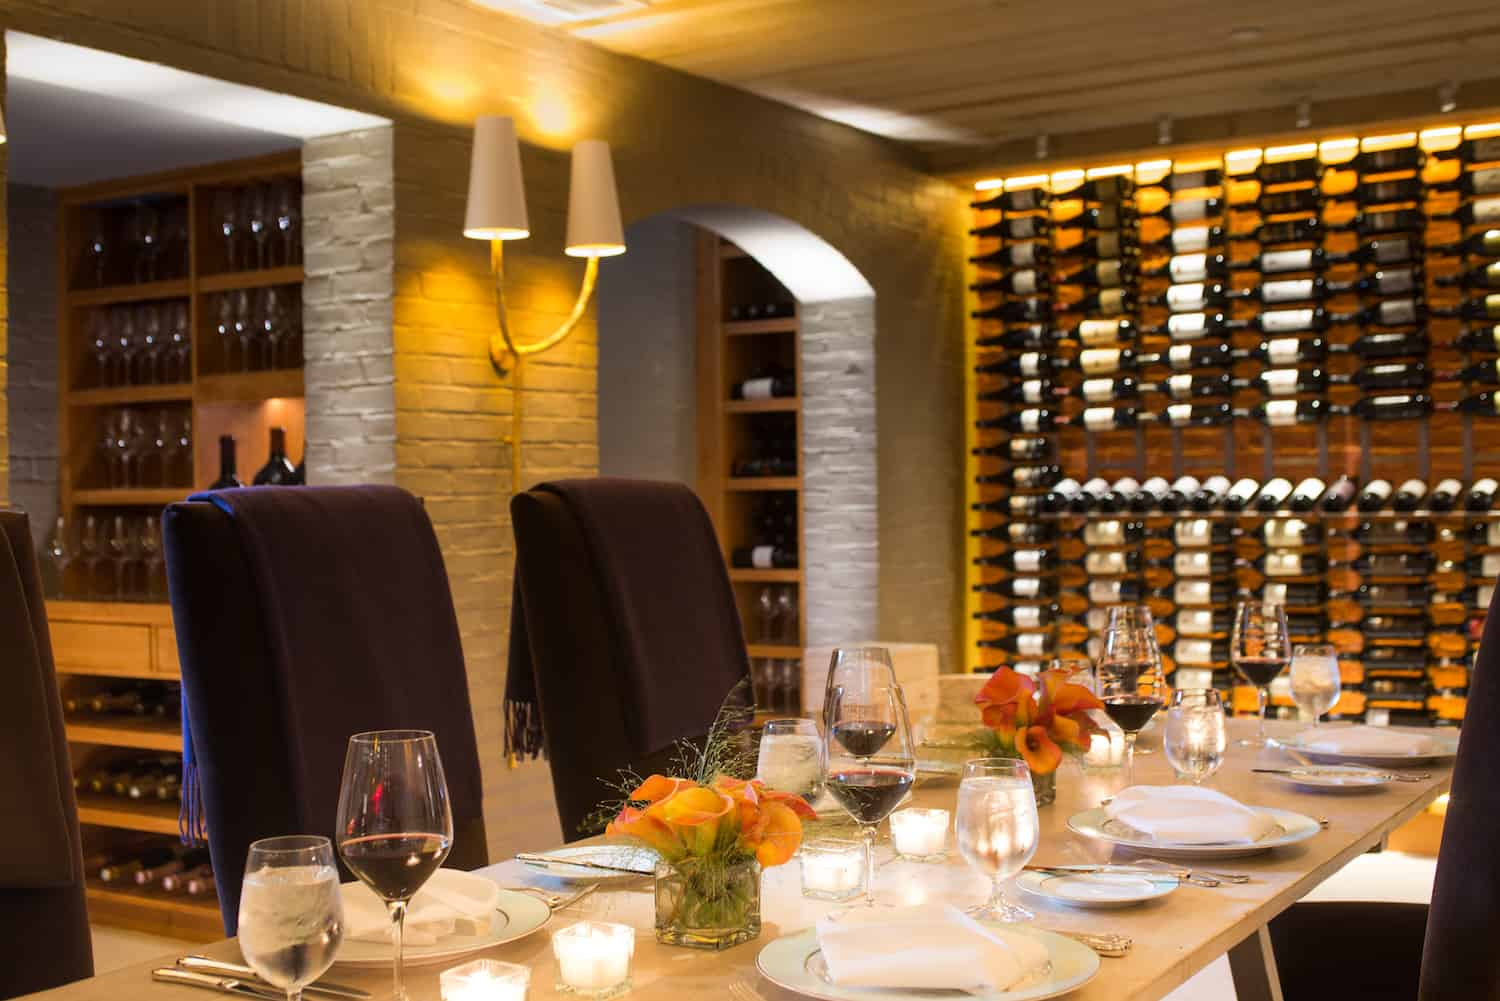 A set table inside the wine cellar dining area of Magdalena inside The Ivy Baltimore.